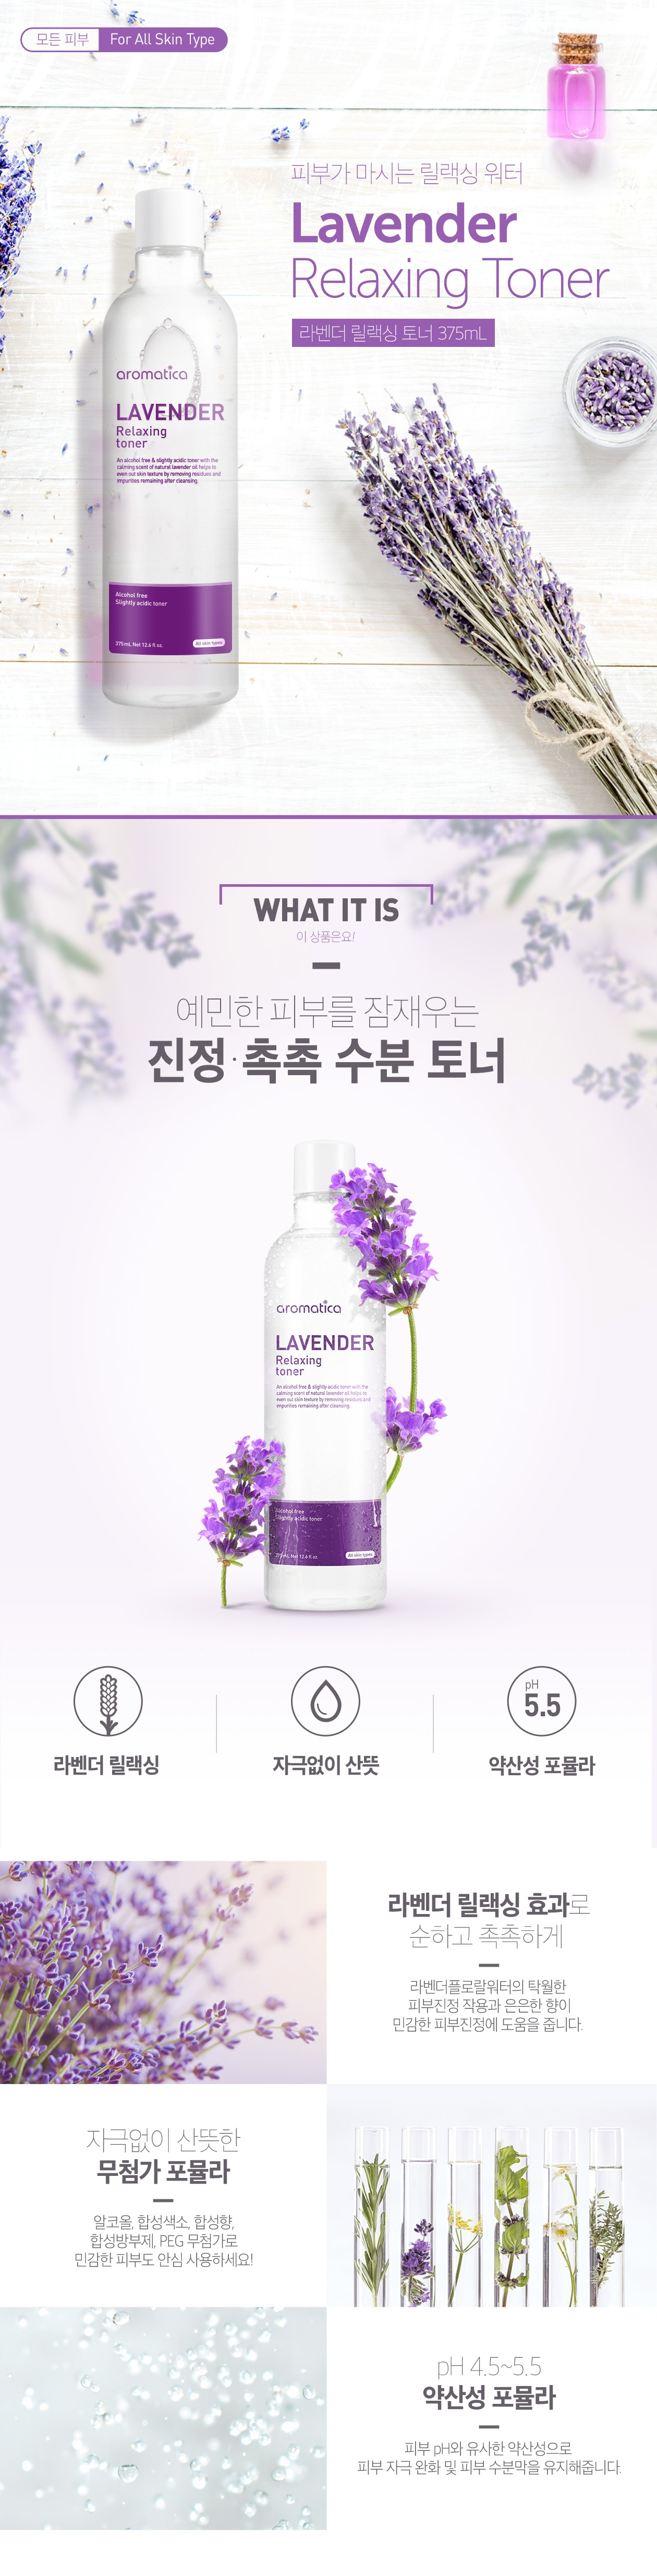 Aromatica Lavender Relaxing Toner new korean cosmetic skincare product online shop malaysia china japan1